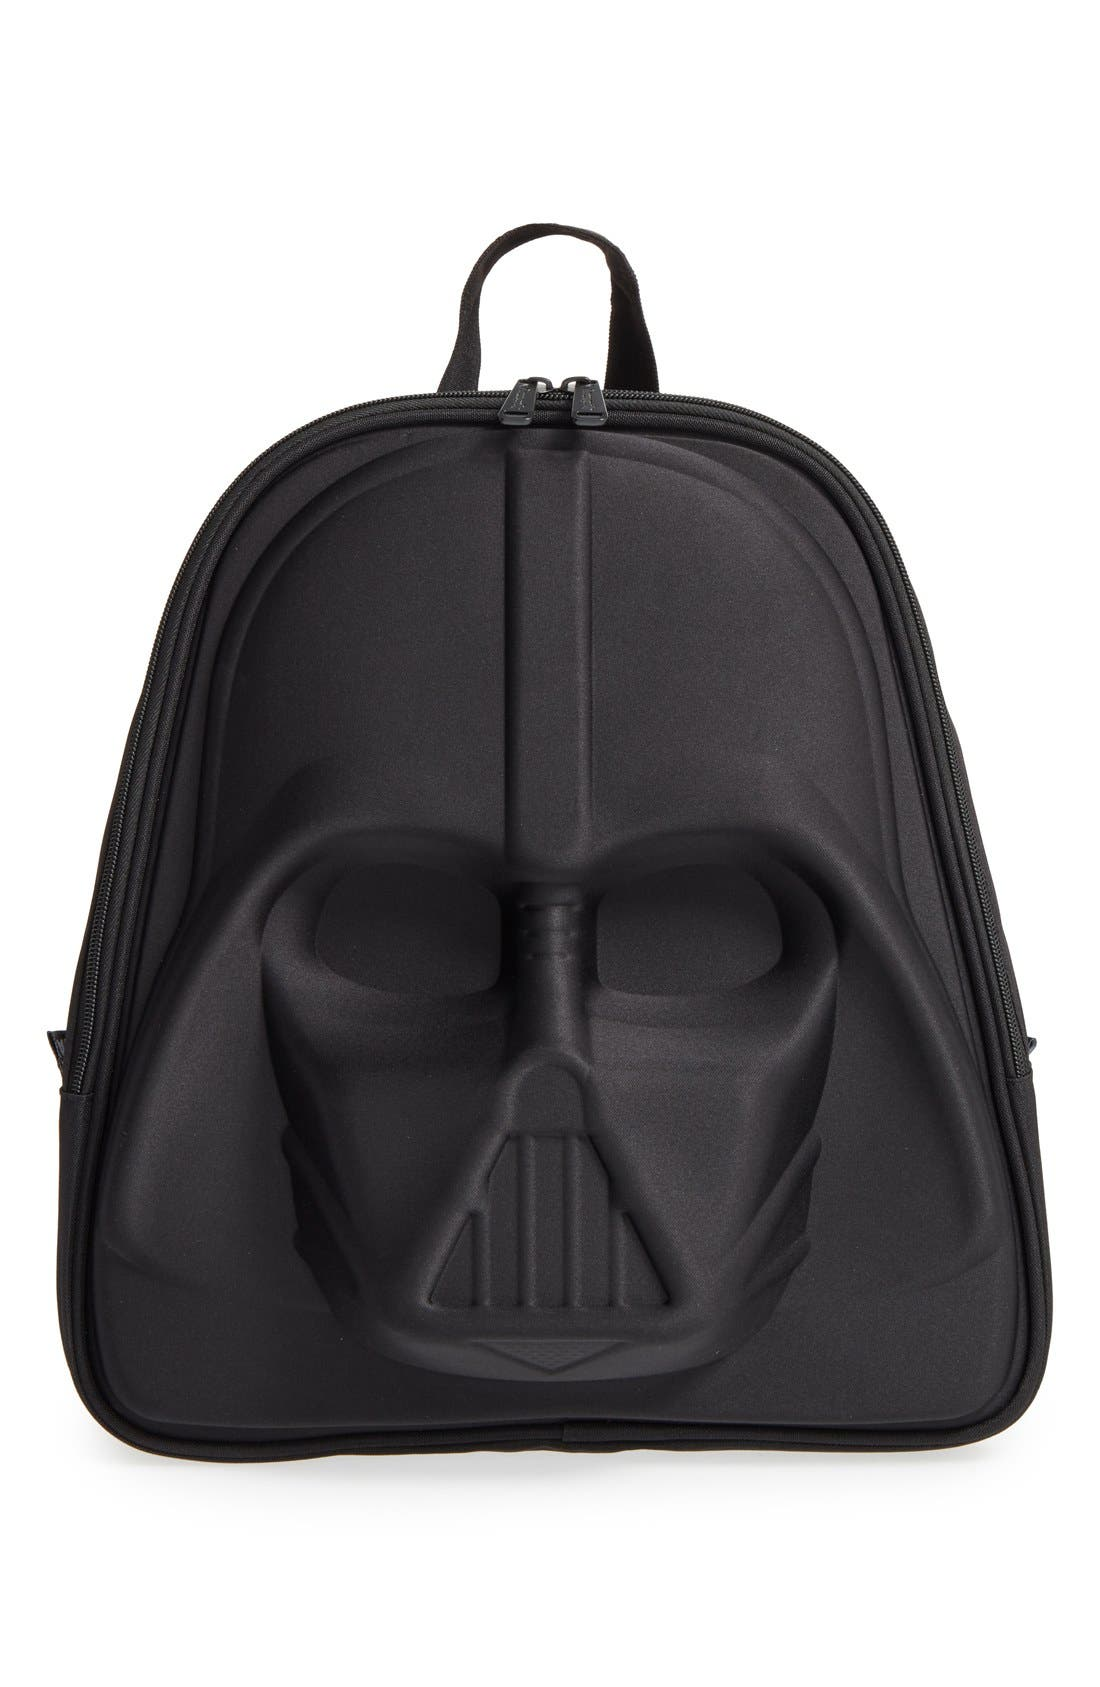 'Star Wars<sup>™</sup> - Darth Vader' Backpack,                         Main,                         color,